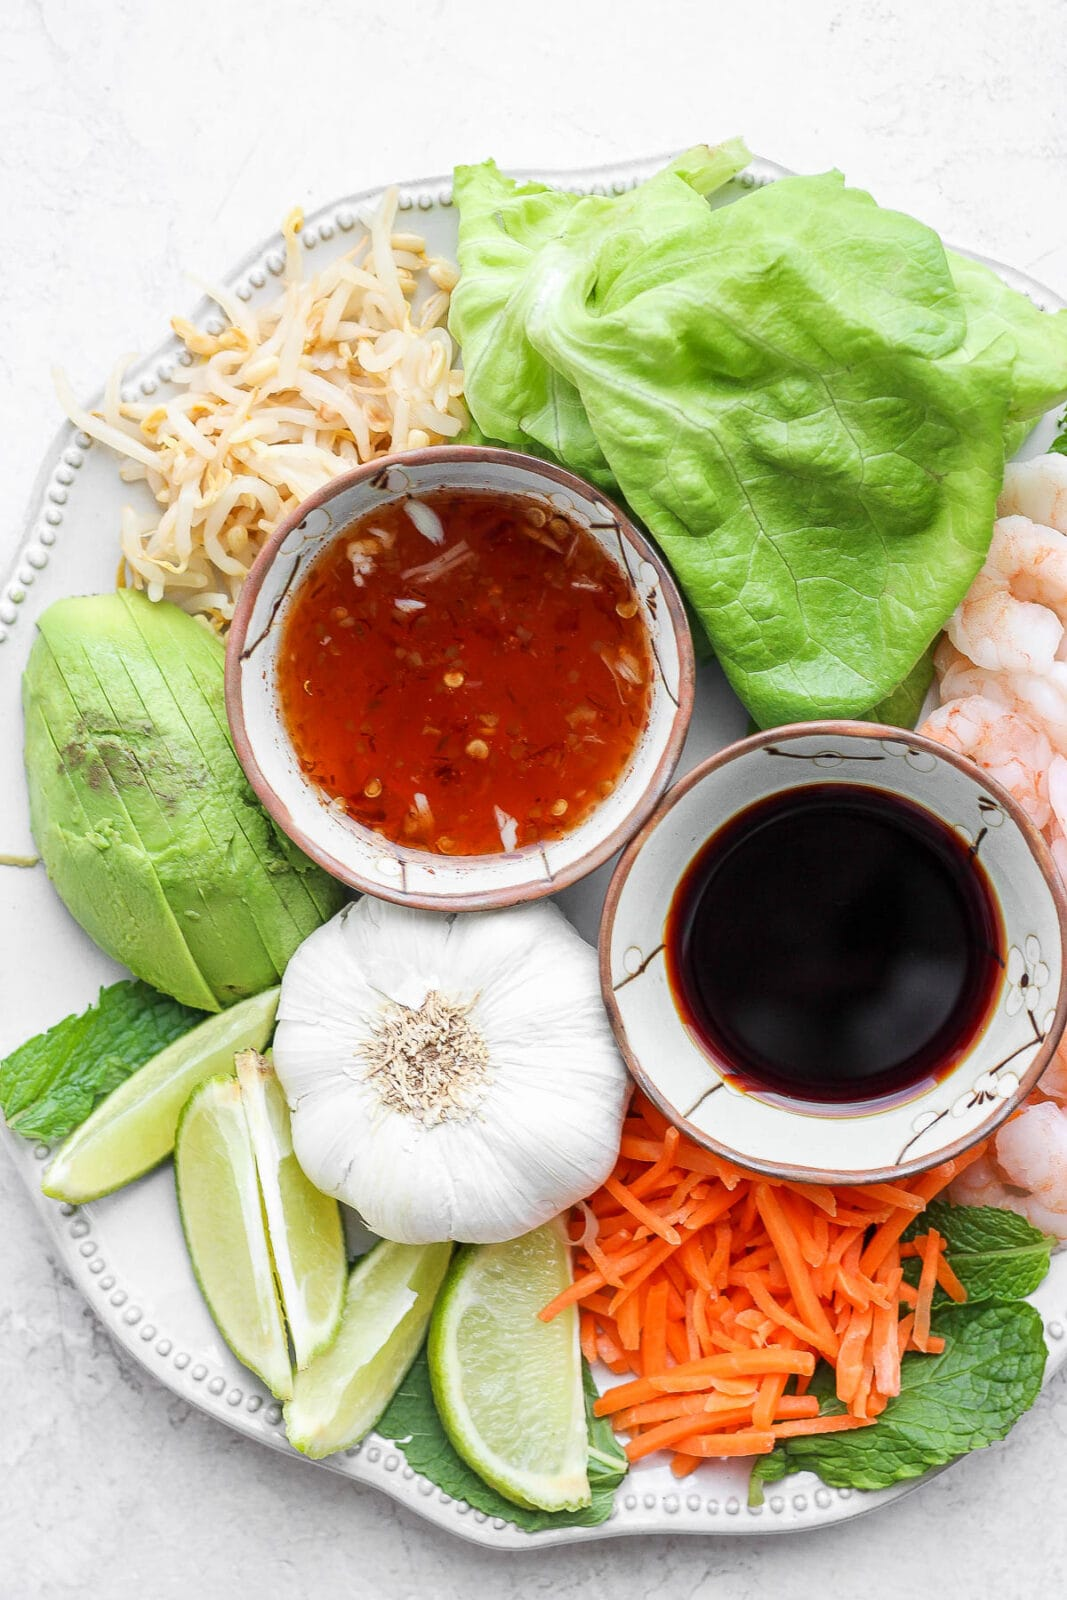 Plate with spring roll ingredients and a dish of spring roll dipping sauce.